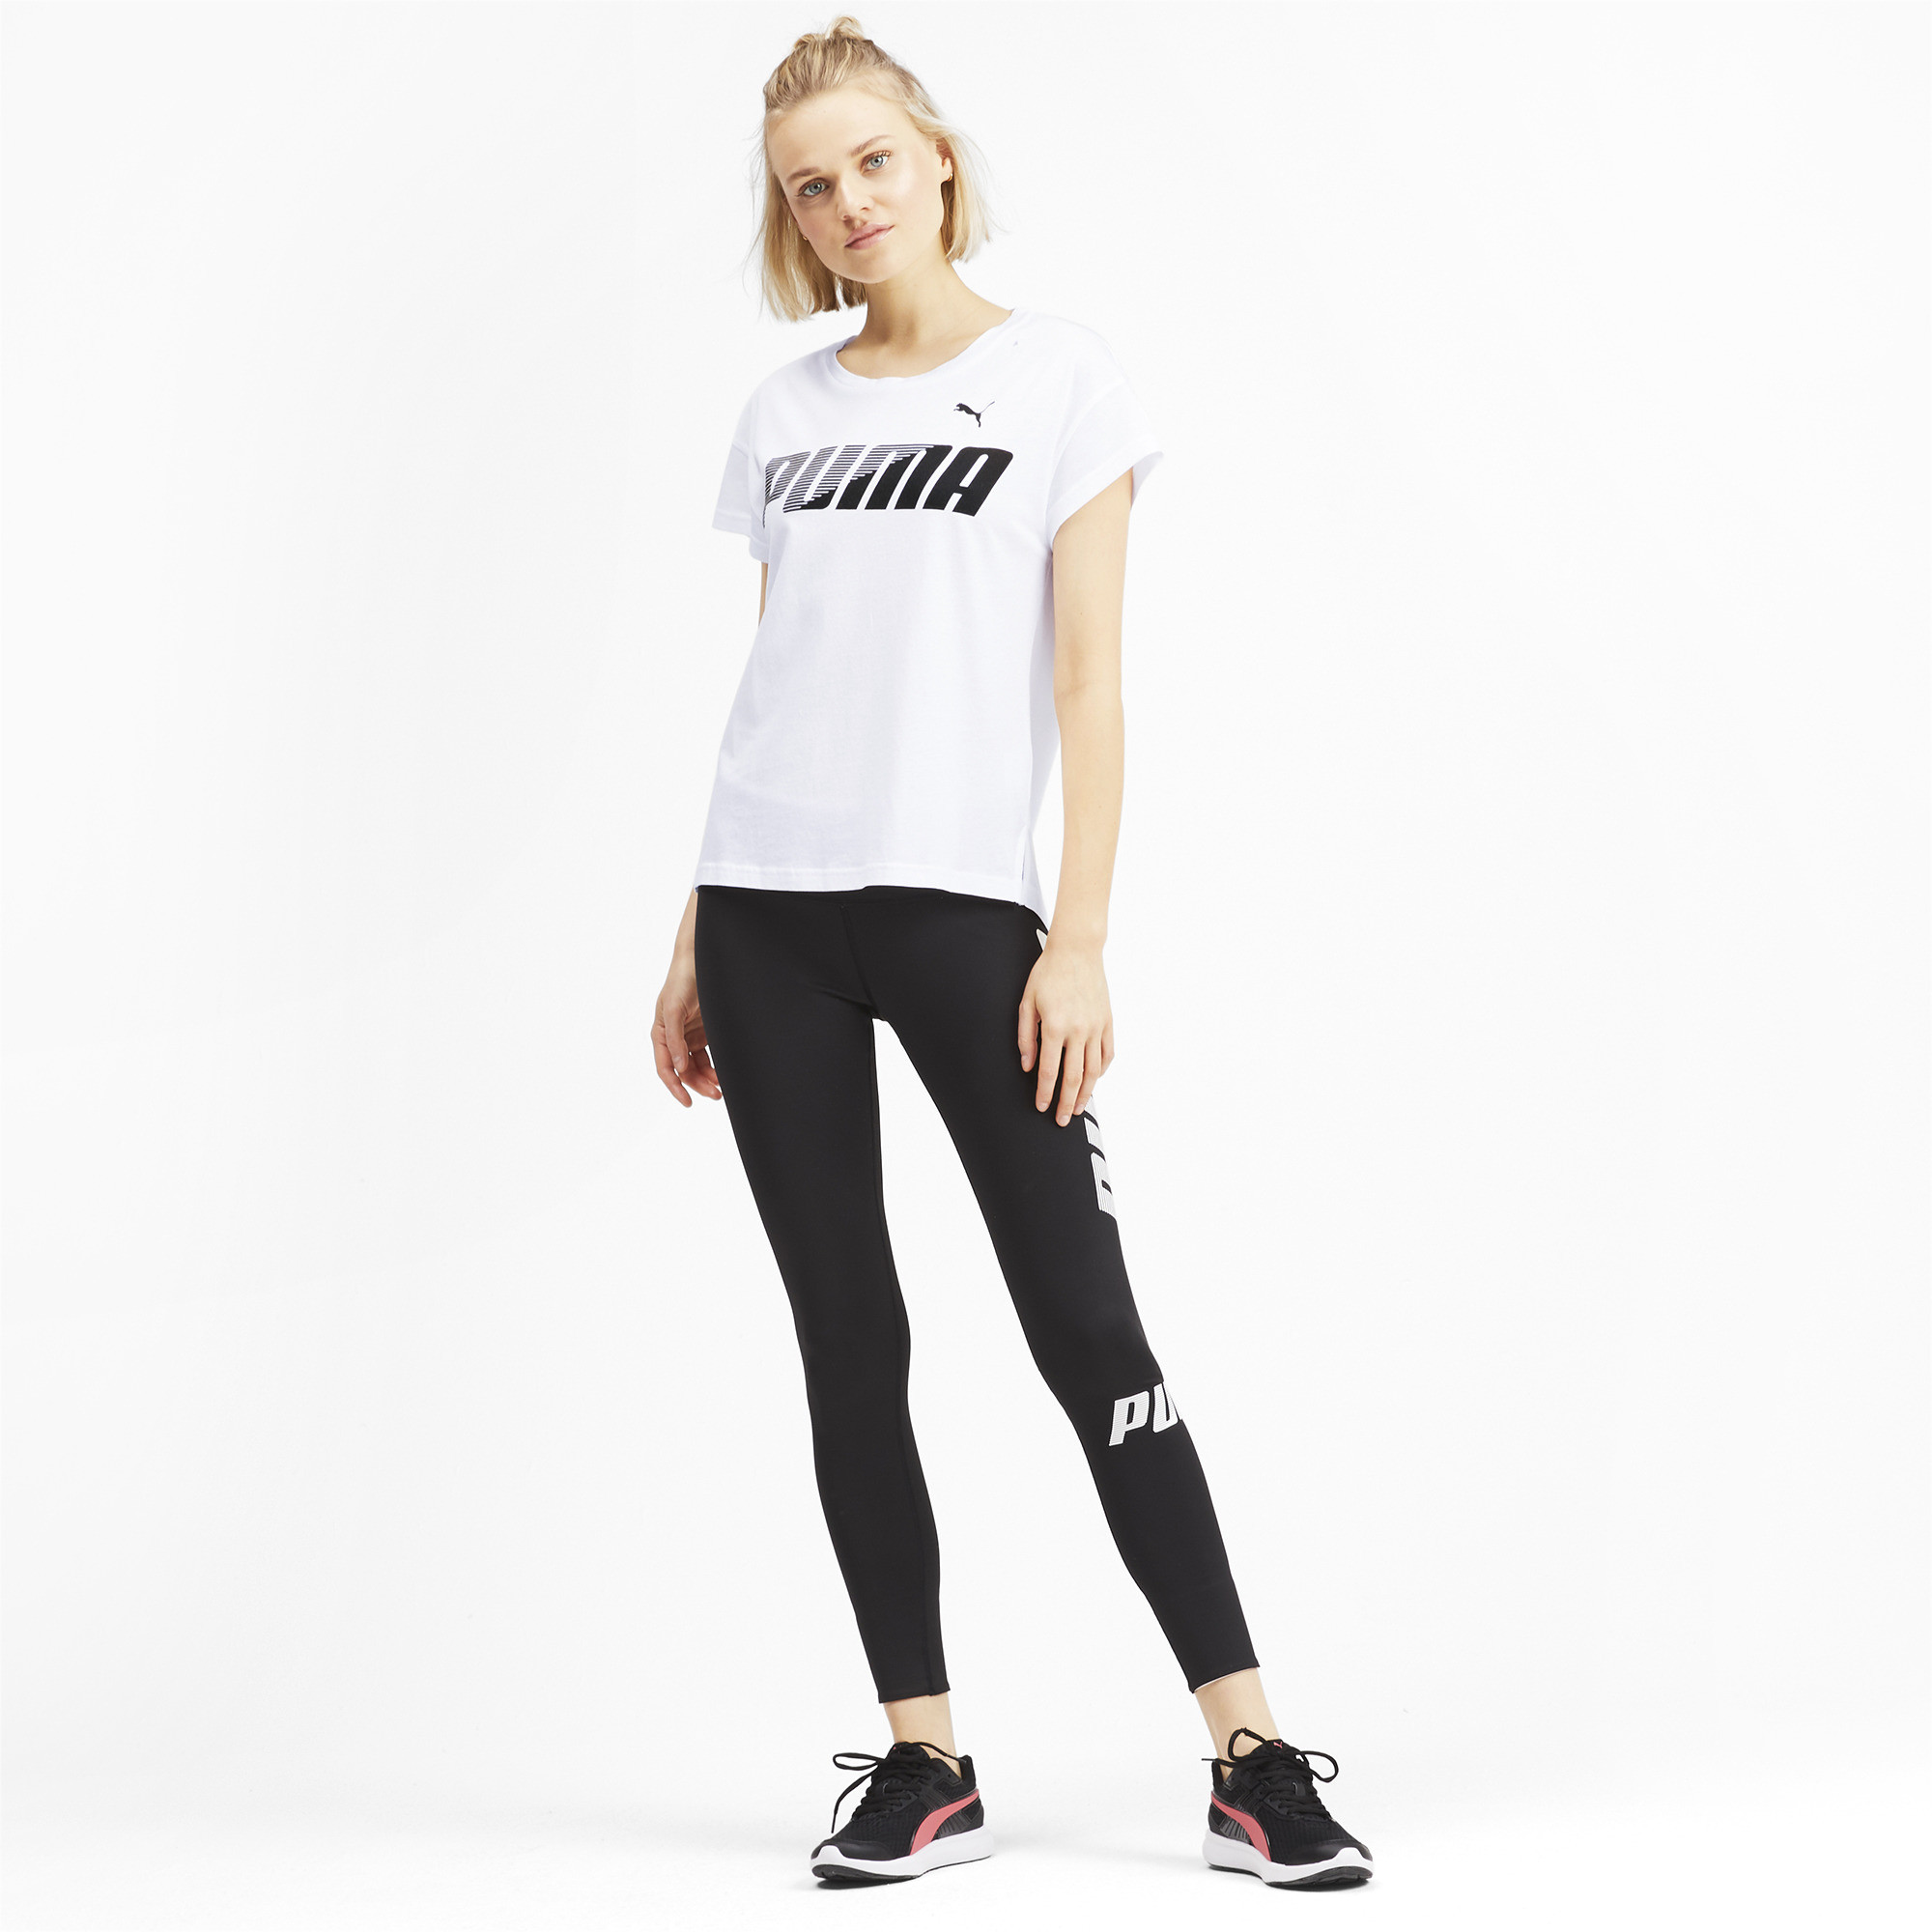 PUMA-Modern-Sports-Women-039-s-Graphic-Tee-Women-Tee-Basics thumbnail 11